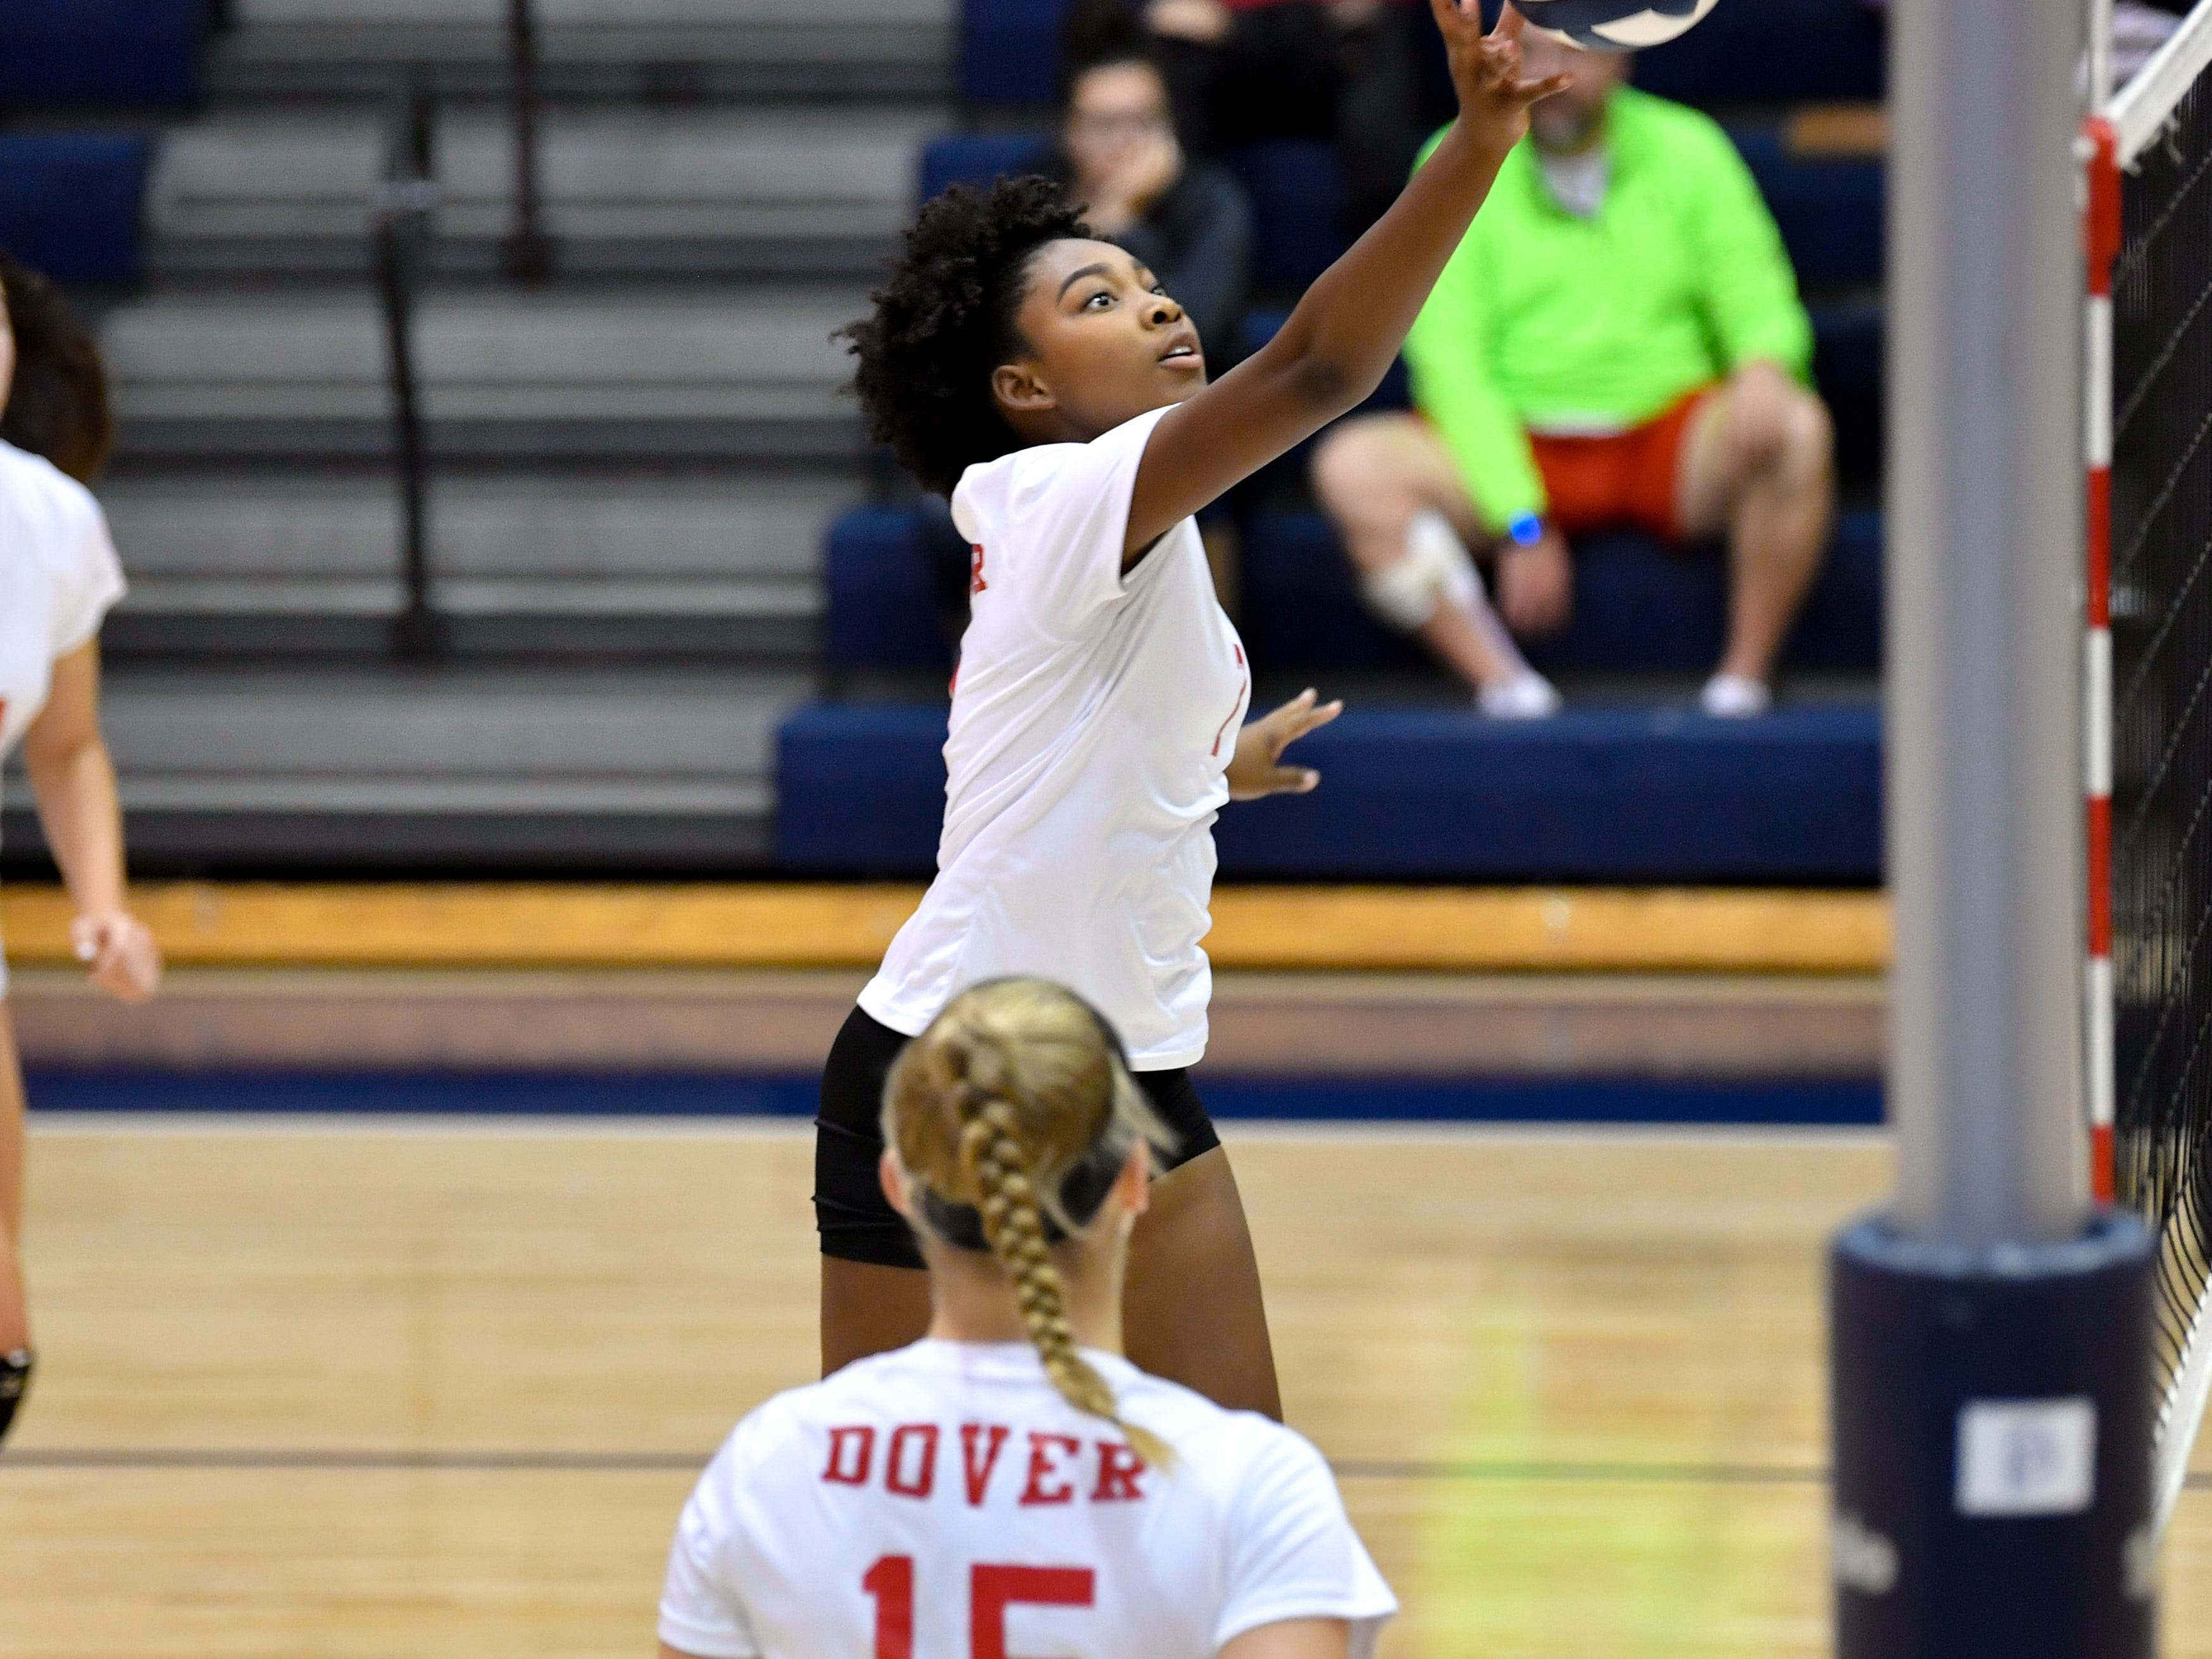 Triana Krider (7) taps the ball over the net during the YAIAA league volleyball tournament semifinals between West York and Dover, Tuesday, October 23, 2018. The Bulldogs defeated the Eagles 3-1.